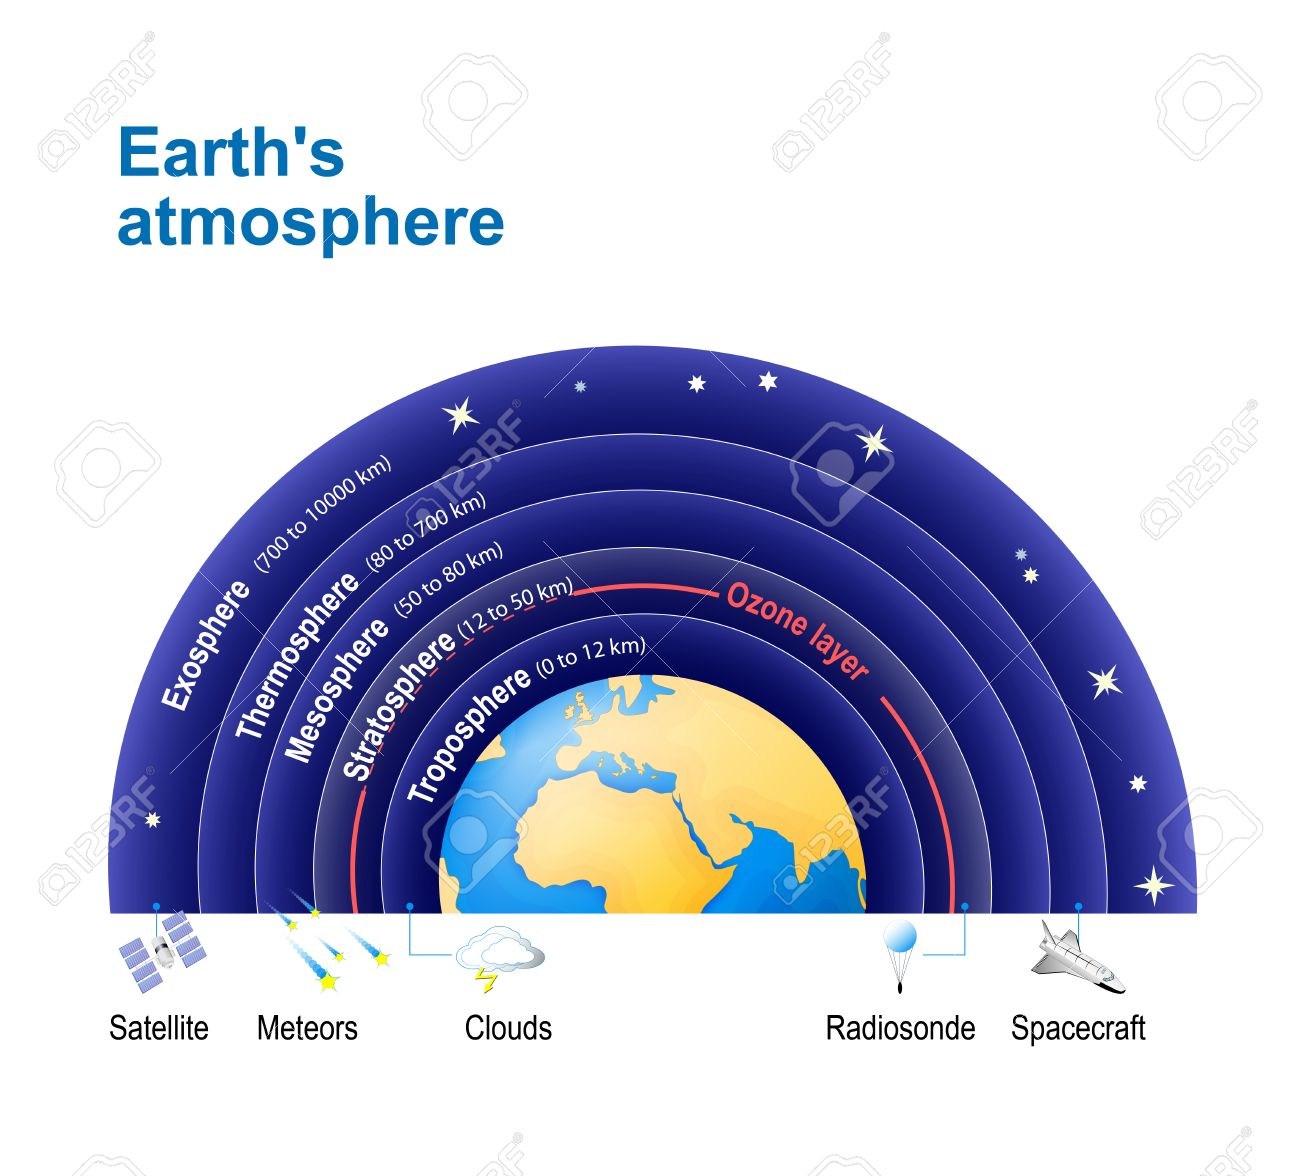 Earths atmosphere with ozone layer structure of the atmosphere earths atmosphere with ozone layer structure of the atmosphere exosphere thermosphere pooptronica Image collections